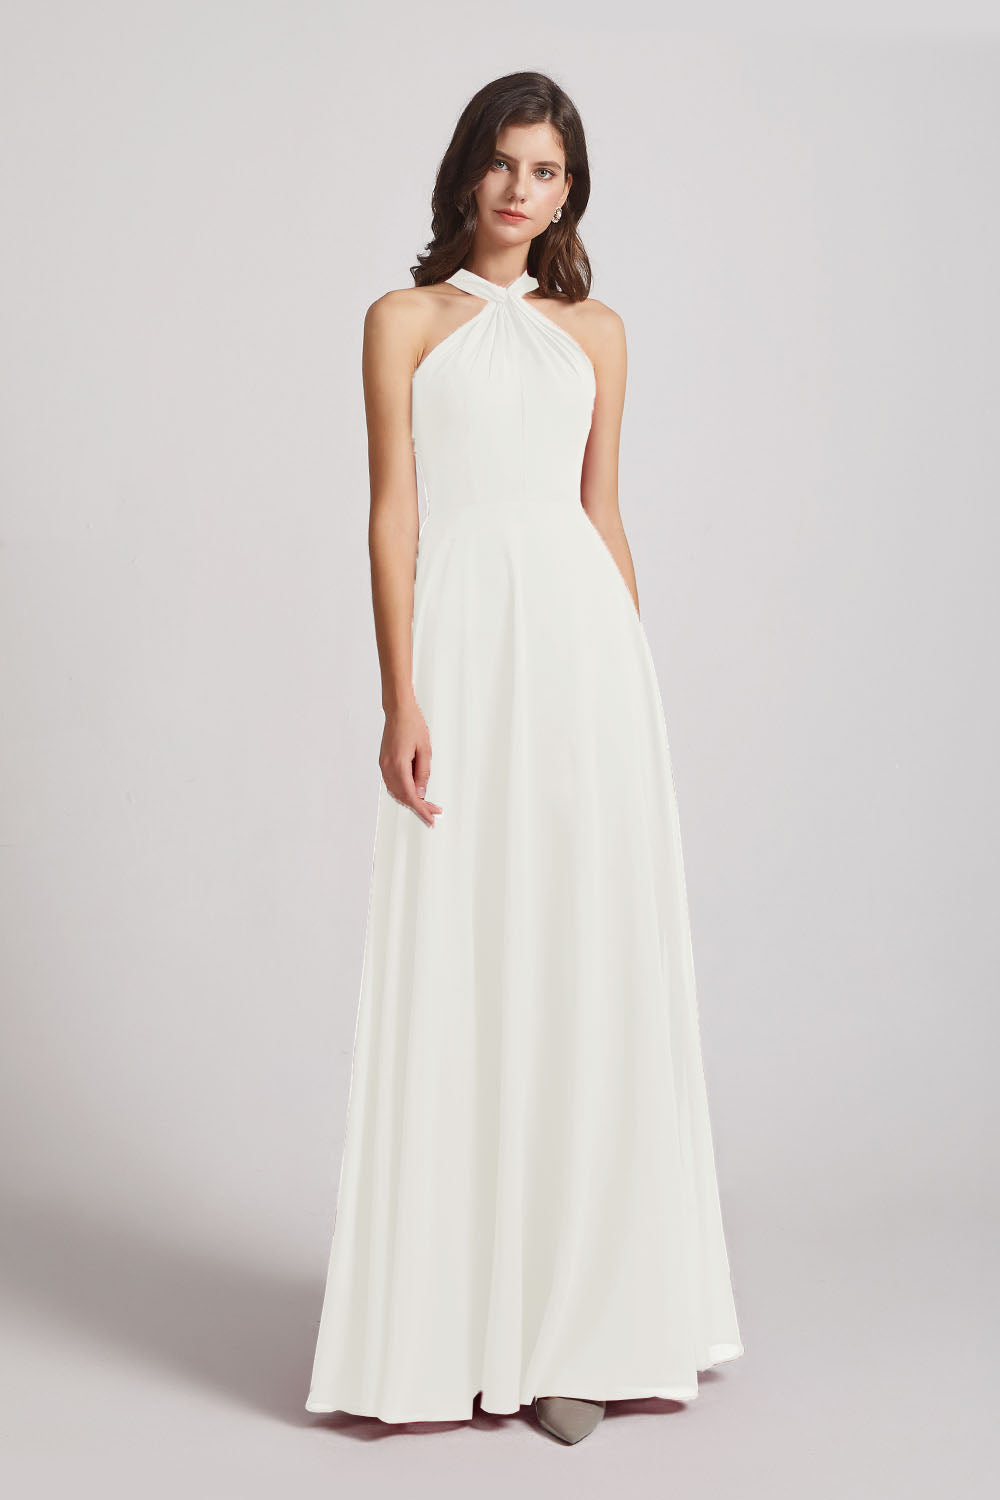 Alfa Bridal Ivory Floor Length Chiffon Bridesmaid Dresses with Criss Cross Neckline (AF0113)